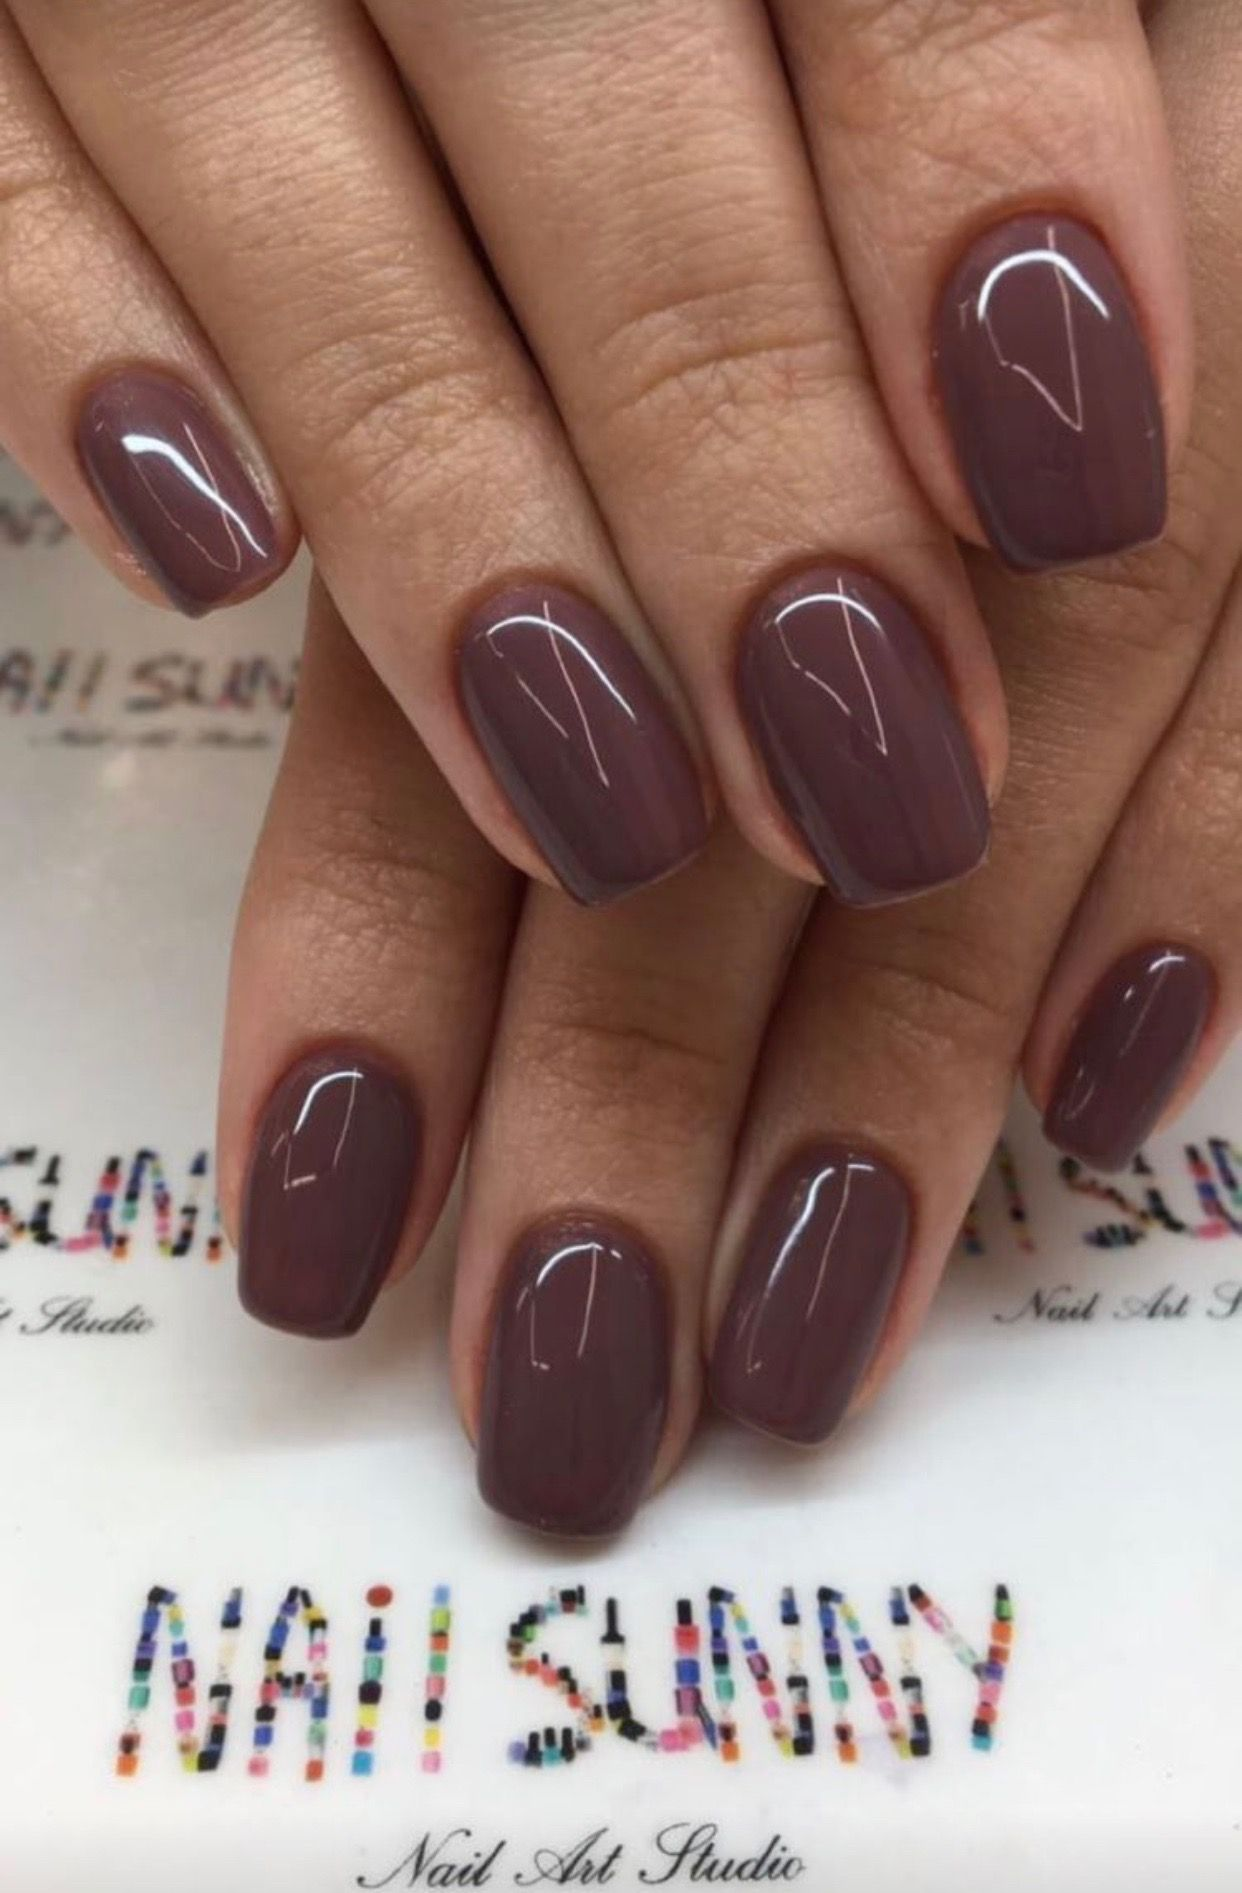 Pin By Wiewiorka On Nails And Toes Paznokcie Pomysly Na